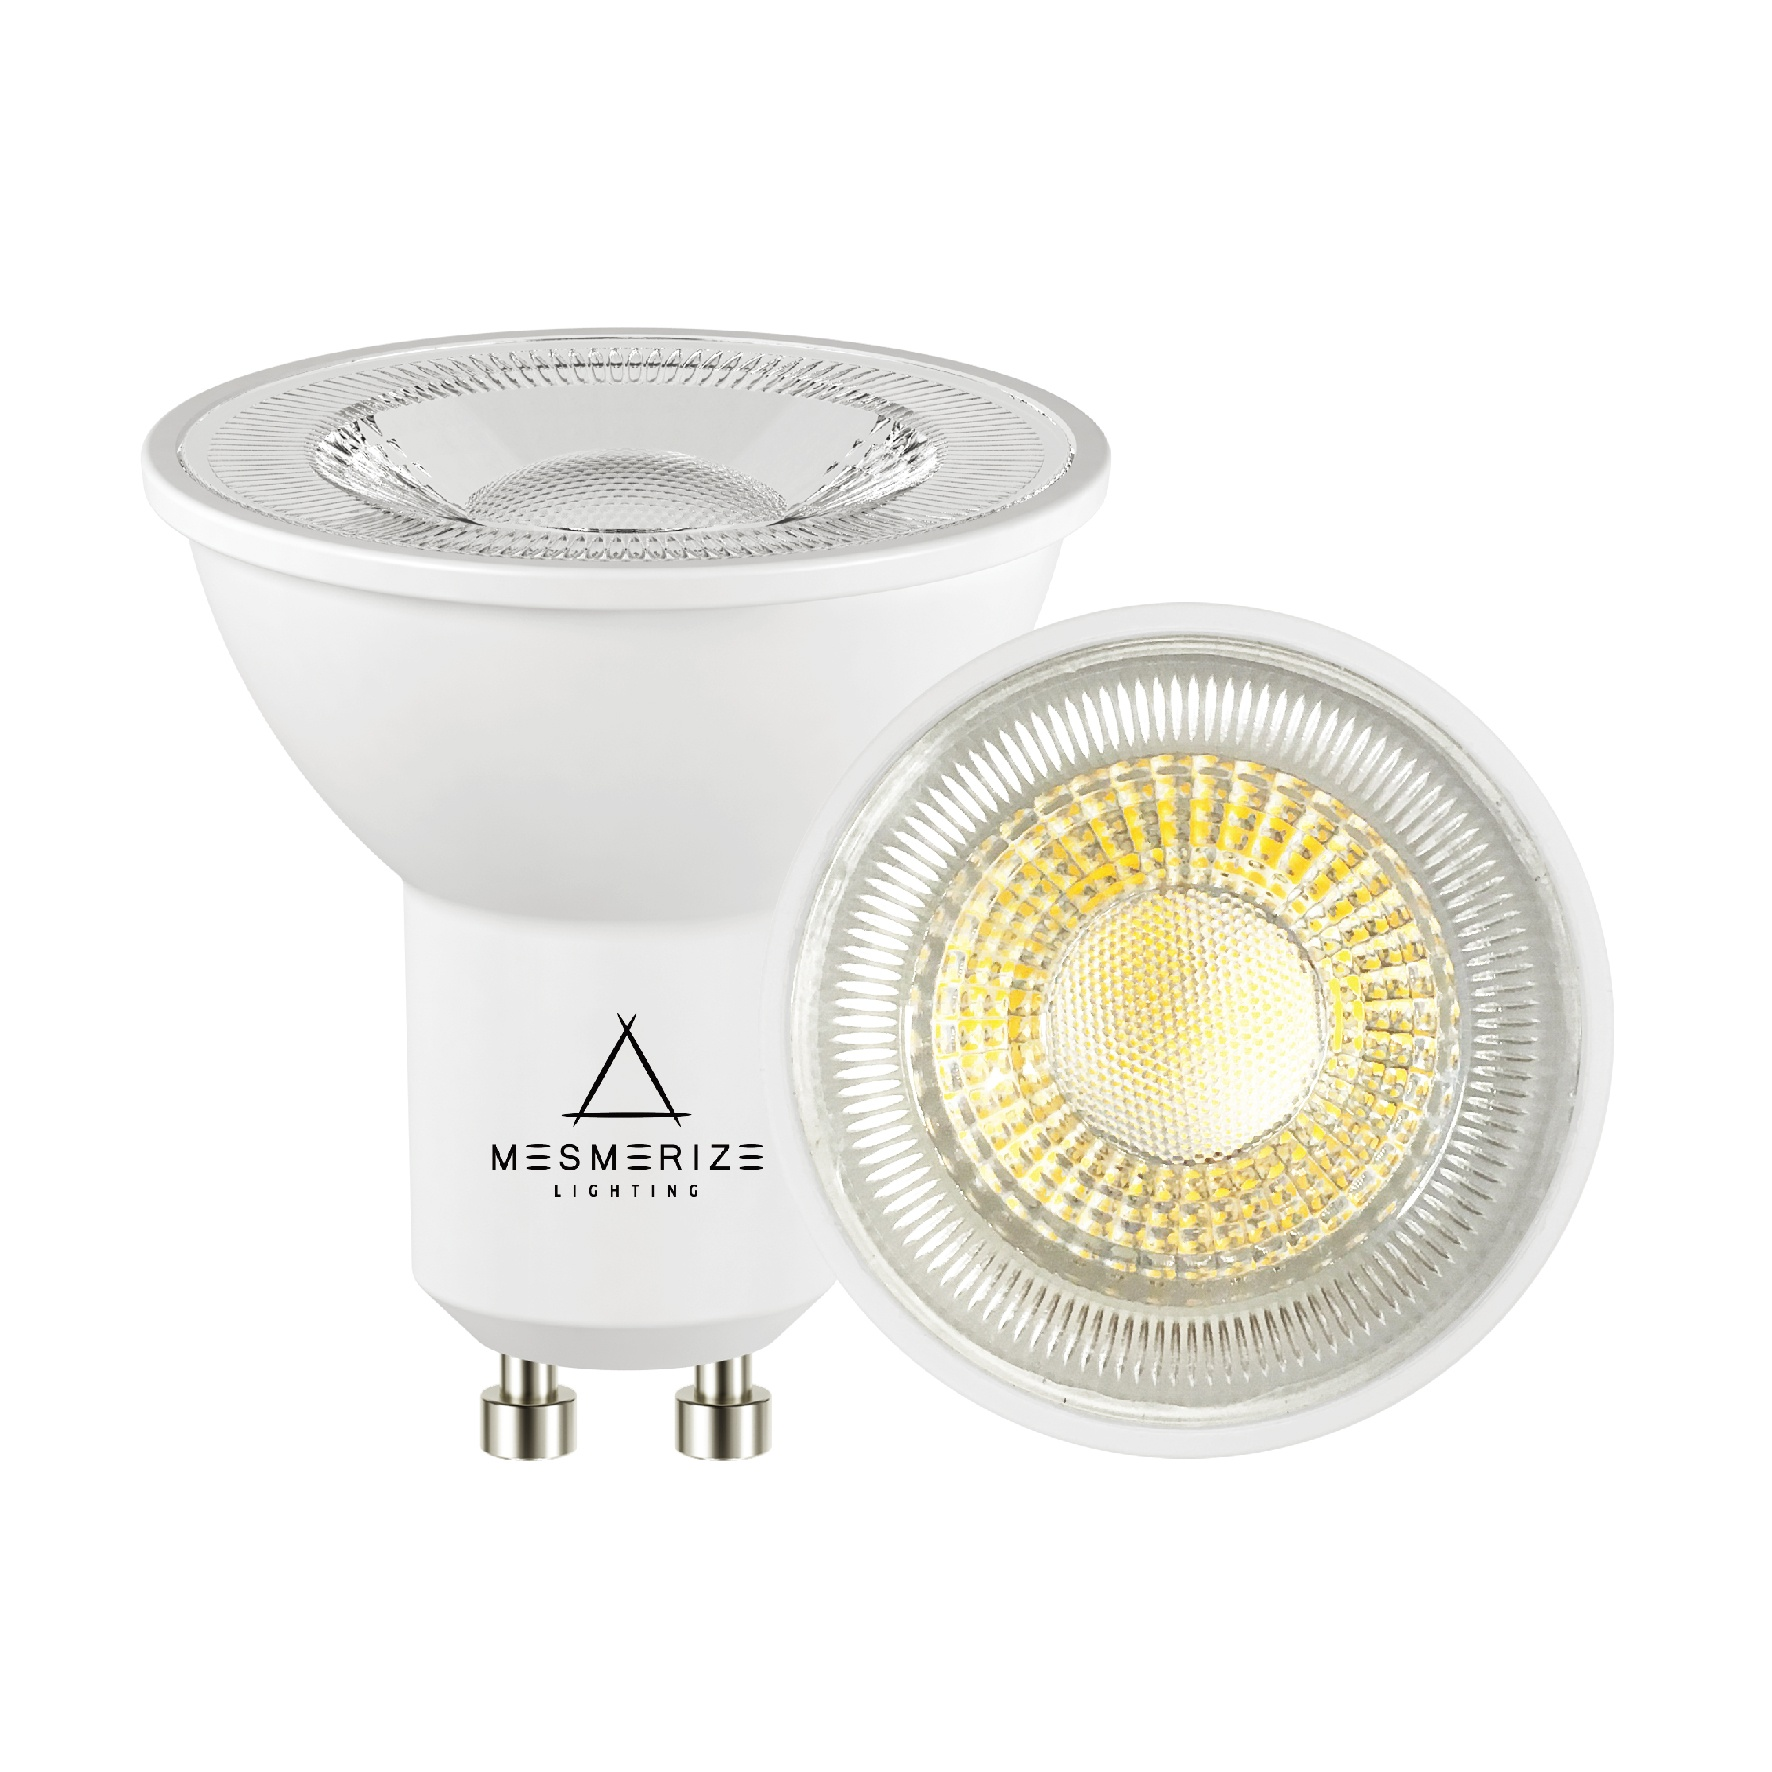 MESMERIZE DOWNLIGHT GU10 LED COMET 5.5W 3000K WARM WHITE DIMMABLE 500LM